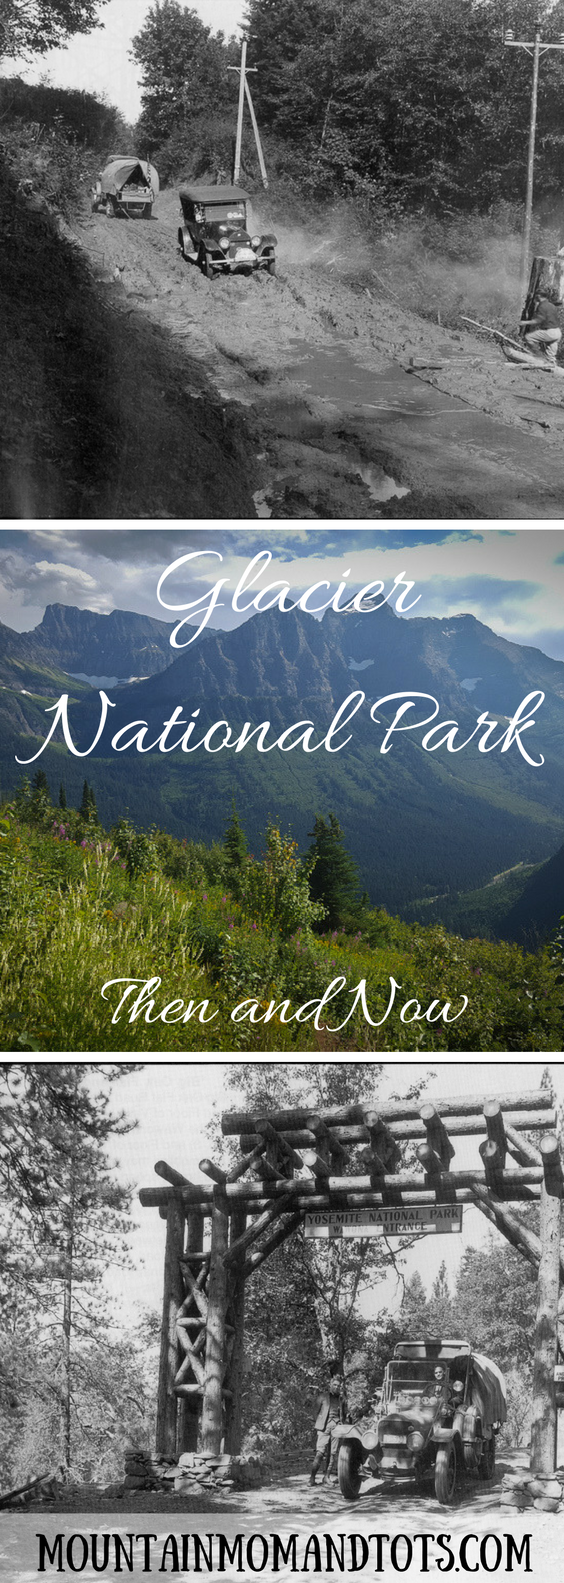 Glacier Then and Now Pin